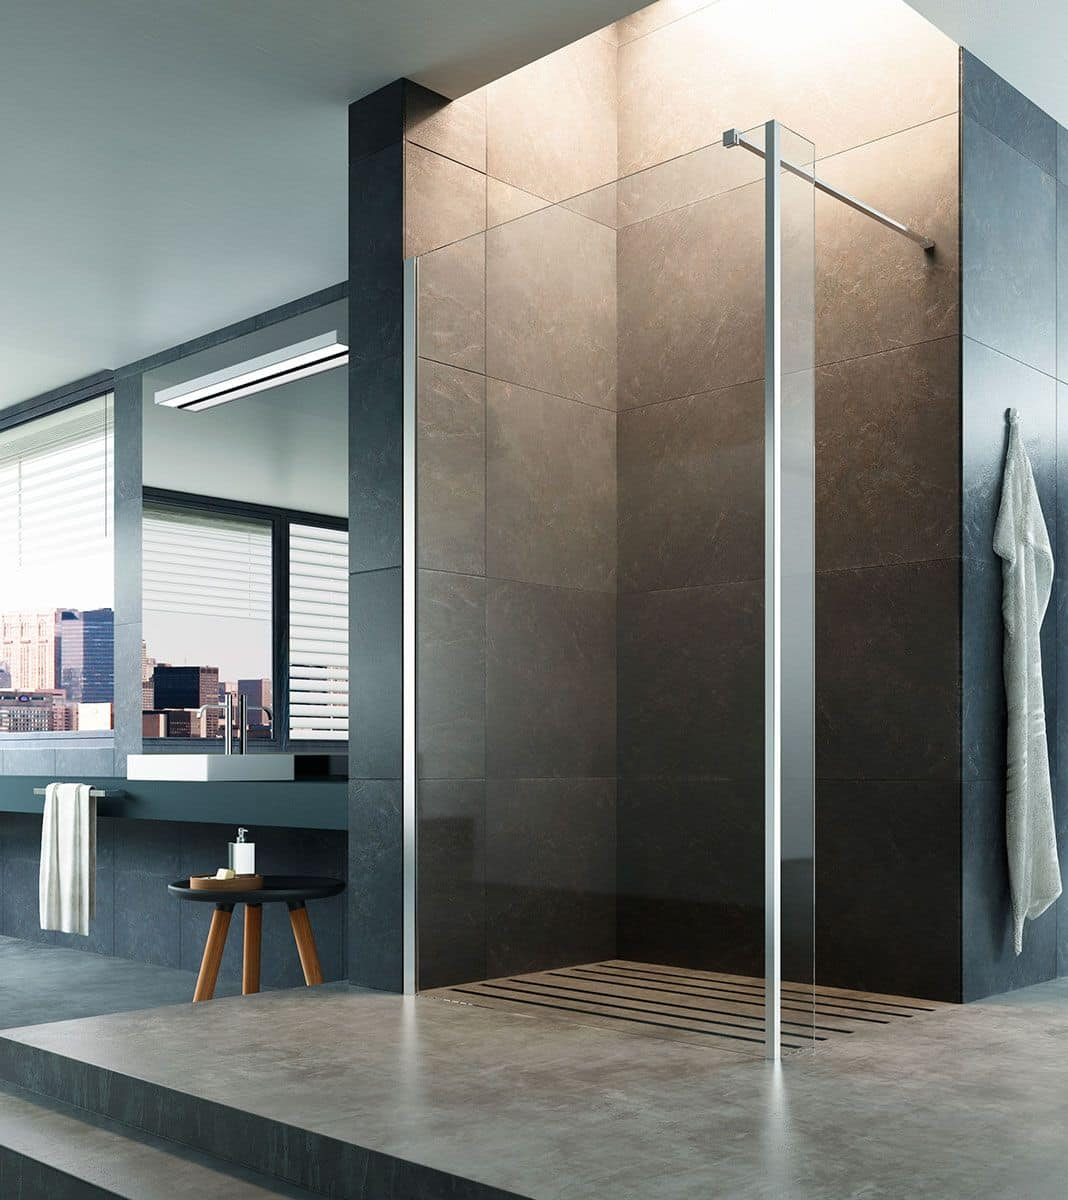 chiusura doccia walk in installazione a pavimento o su piatto idfdesign. Black Bedroom Furniture Sets. Home Design Ideas